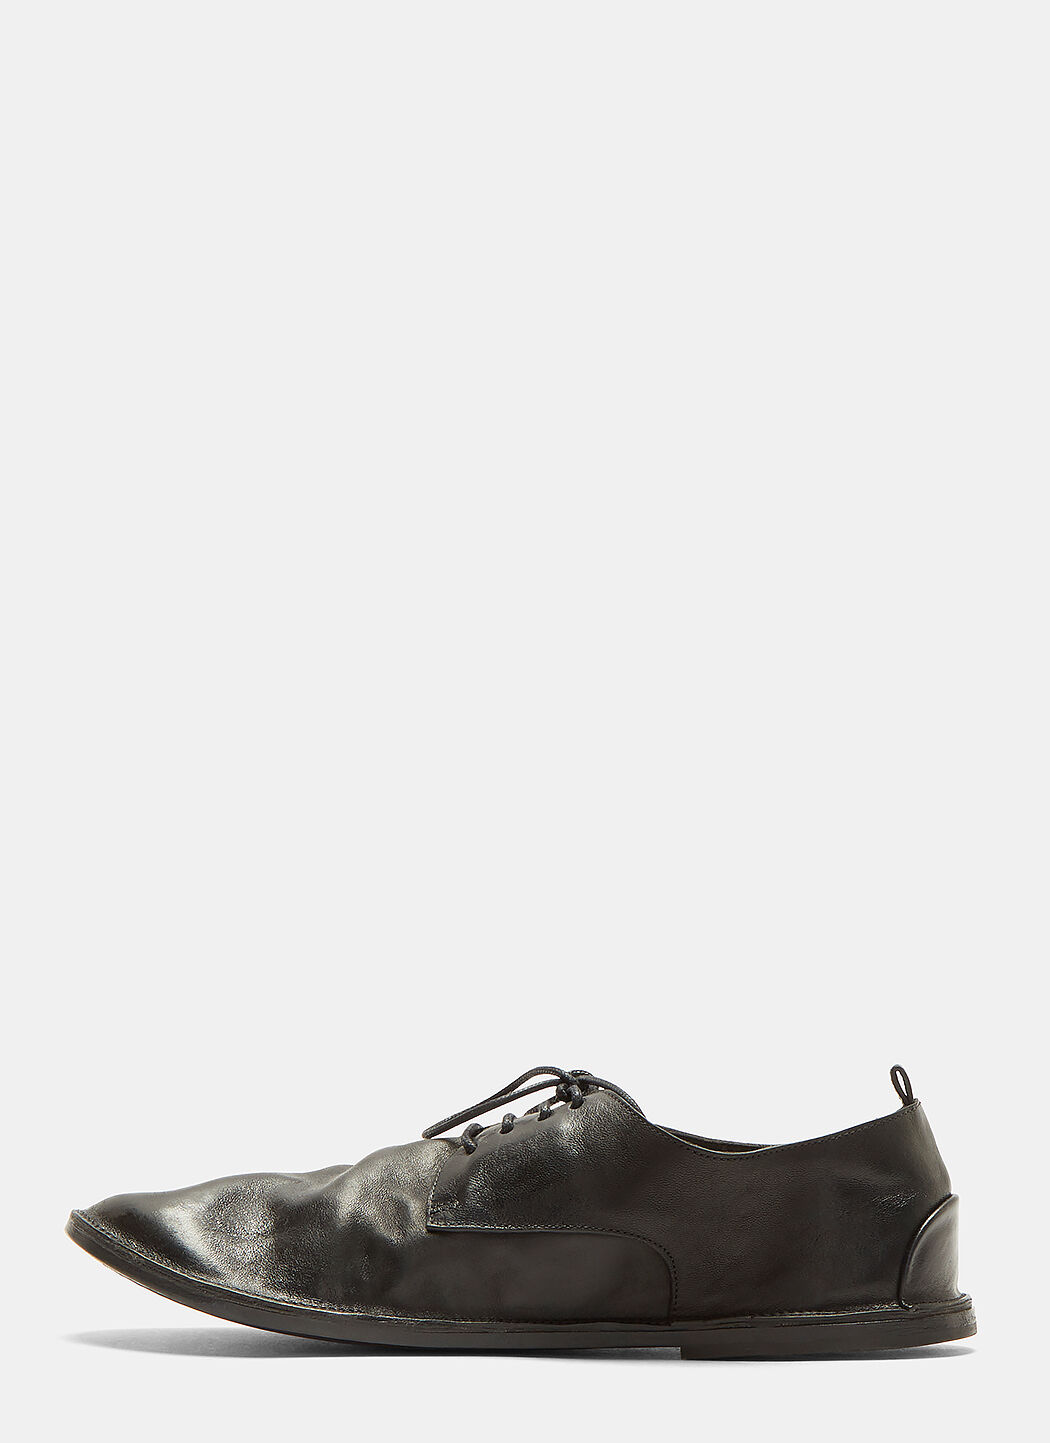 Strasacco Cav.Gluc Lace-Up Shoes Marsèll b9il4PNG